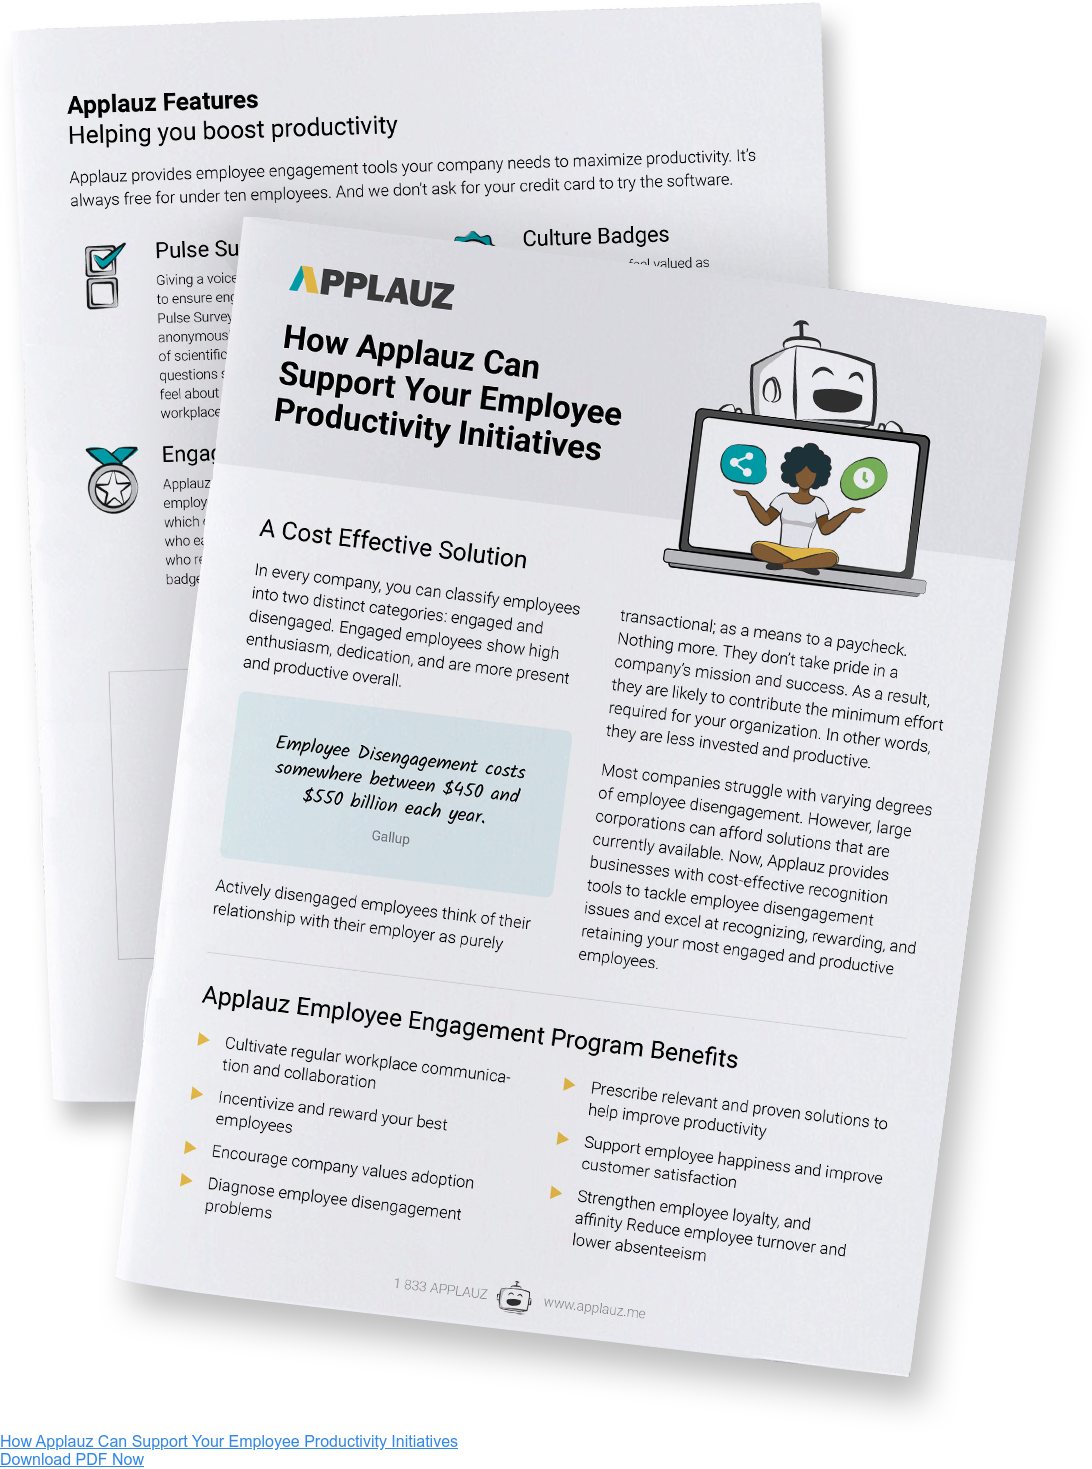 Learn how Applauz can support your employee productivity initiatives - Download PDF Guide